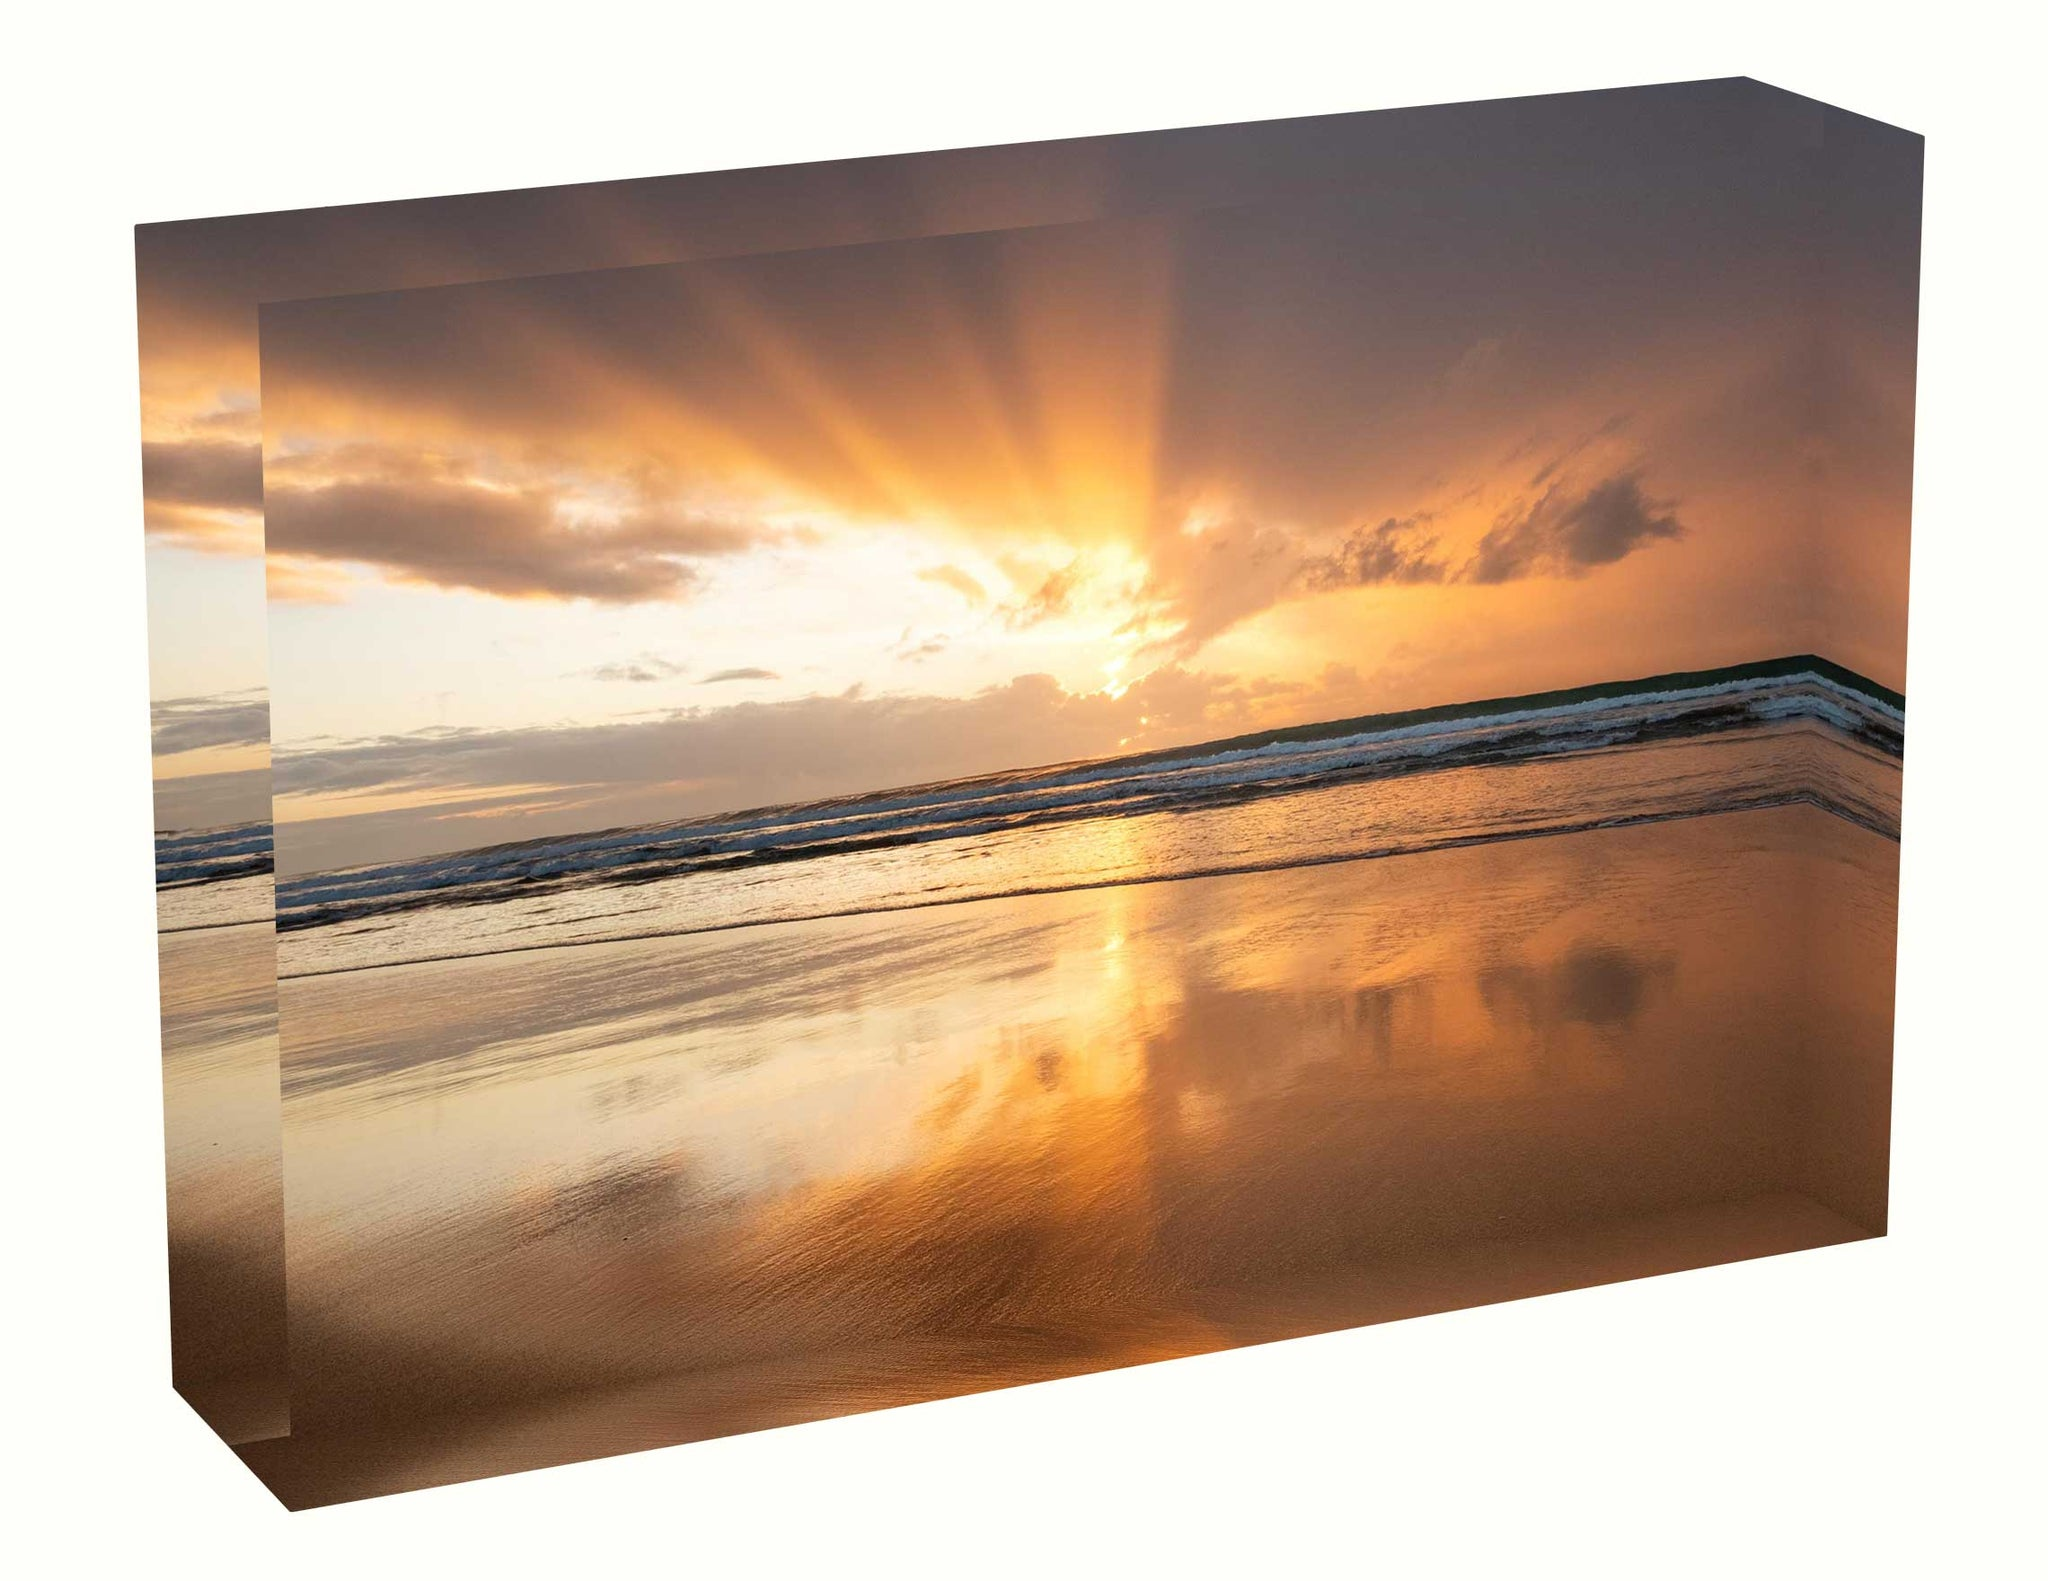 Acrylic block Sunrise photo from the 28 June 2020 at Manly Beach in Sydney